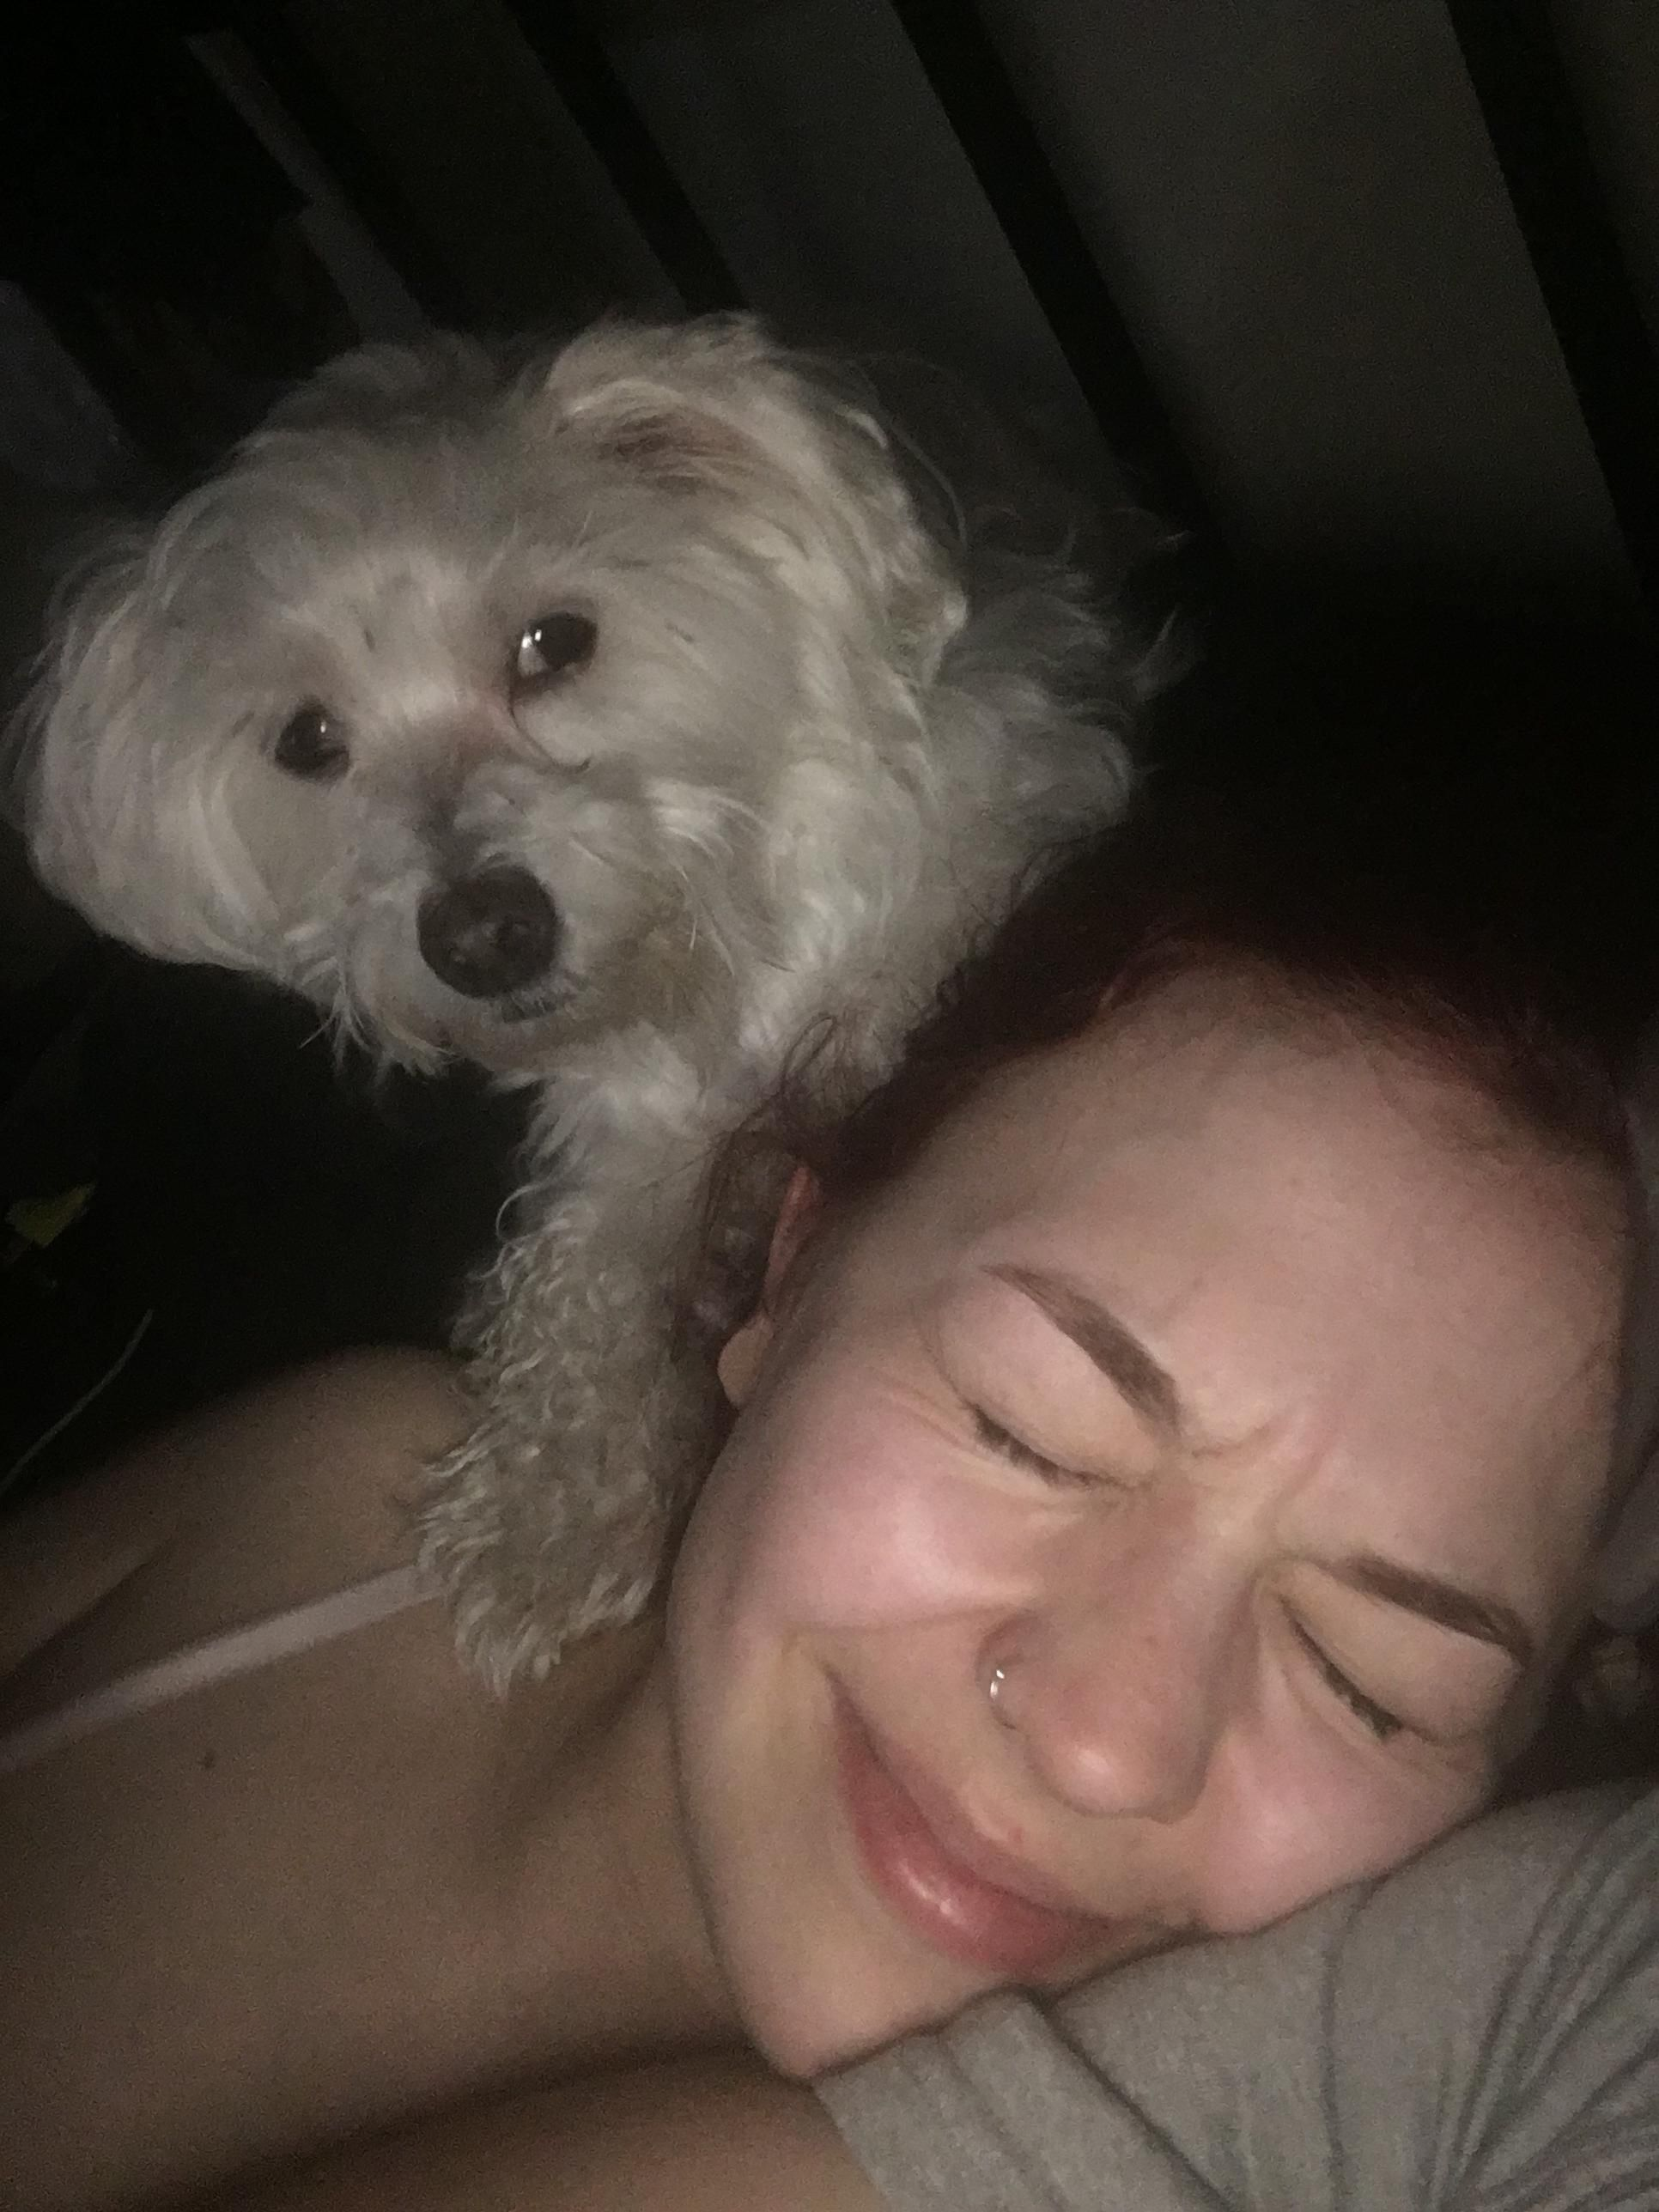 I can't tell if my dog is protecting my girlfriend or has murderous intentions